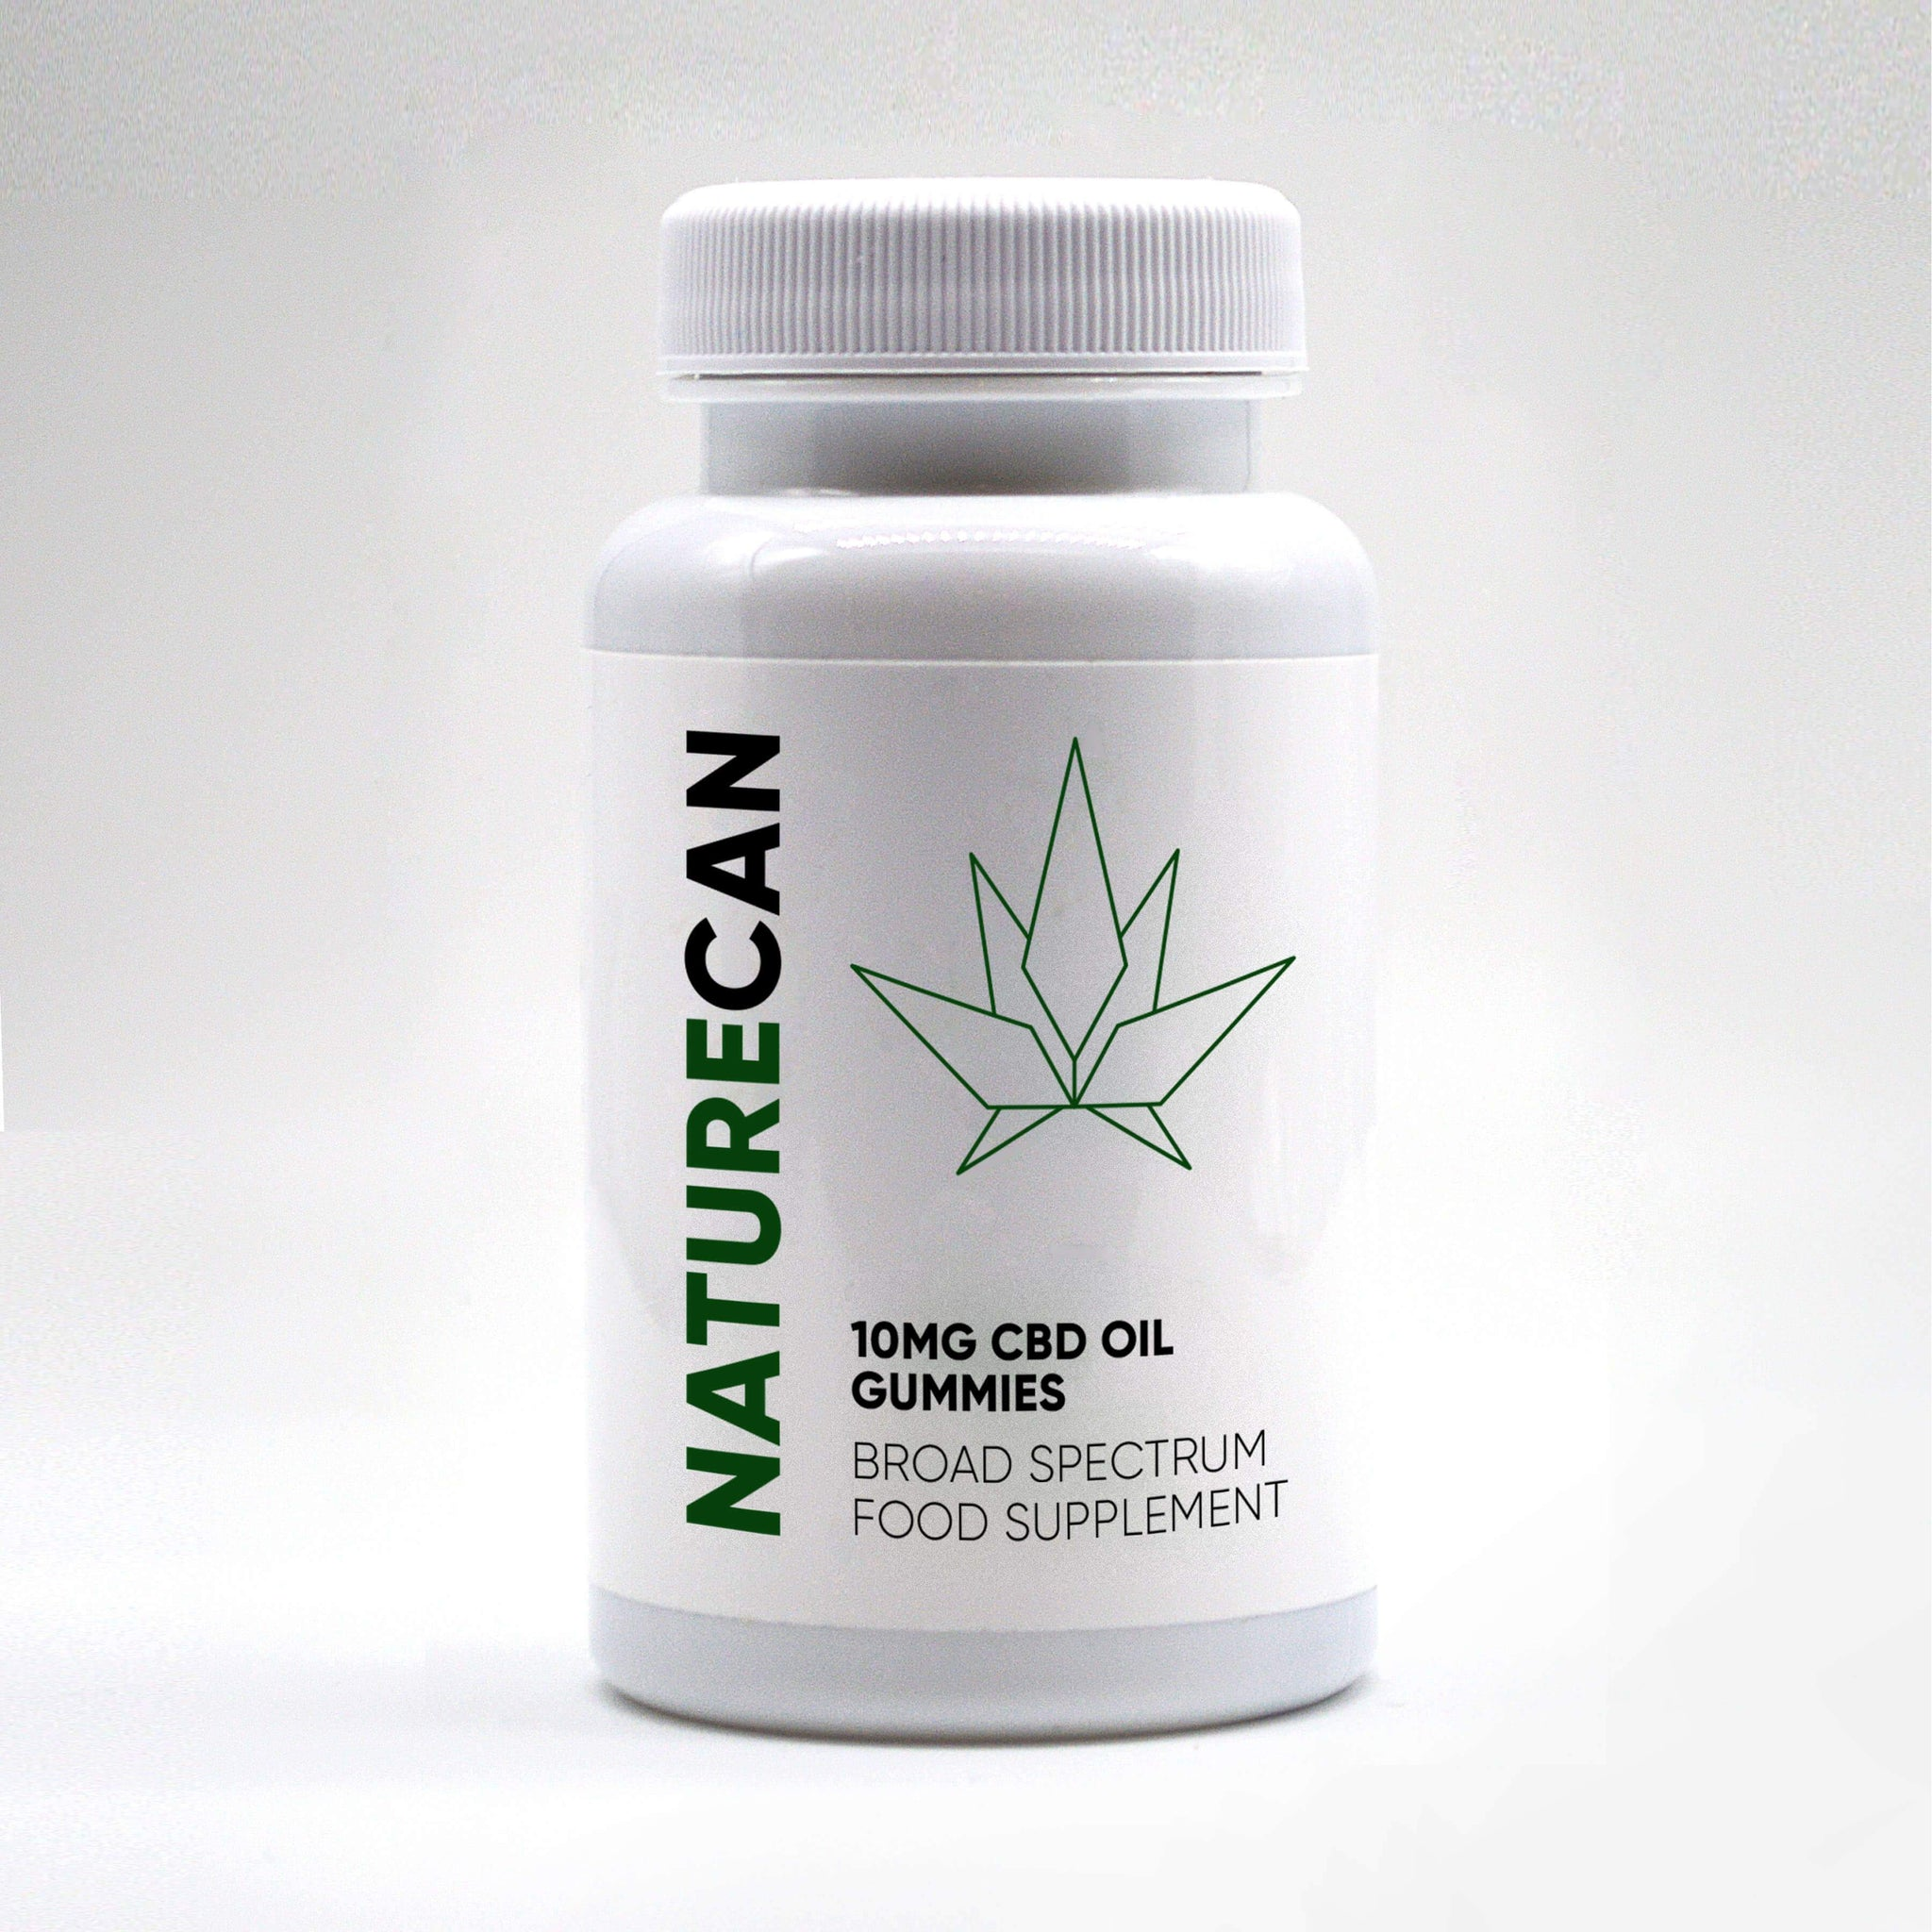 Gomas 10mg CBD Naturecan